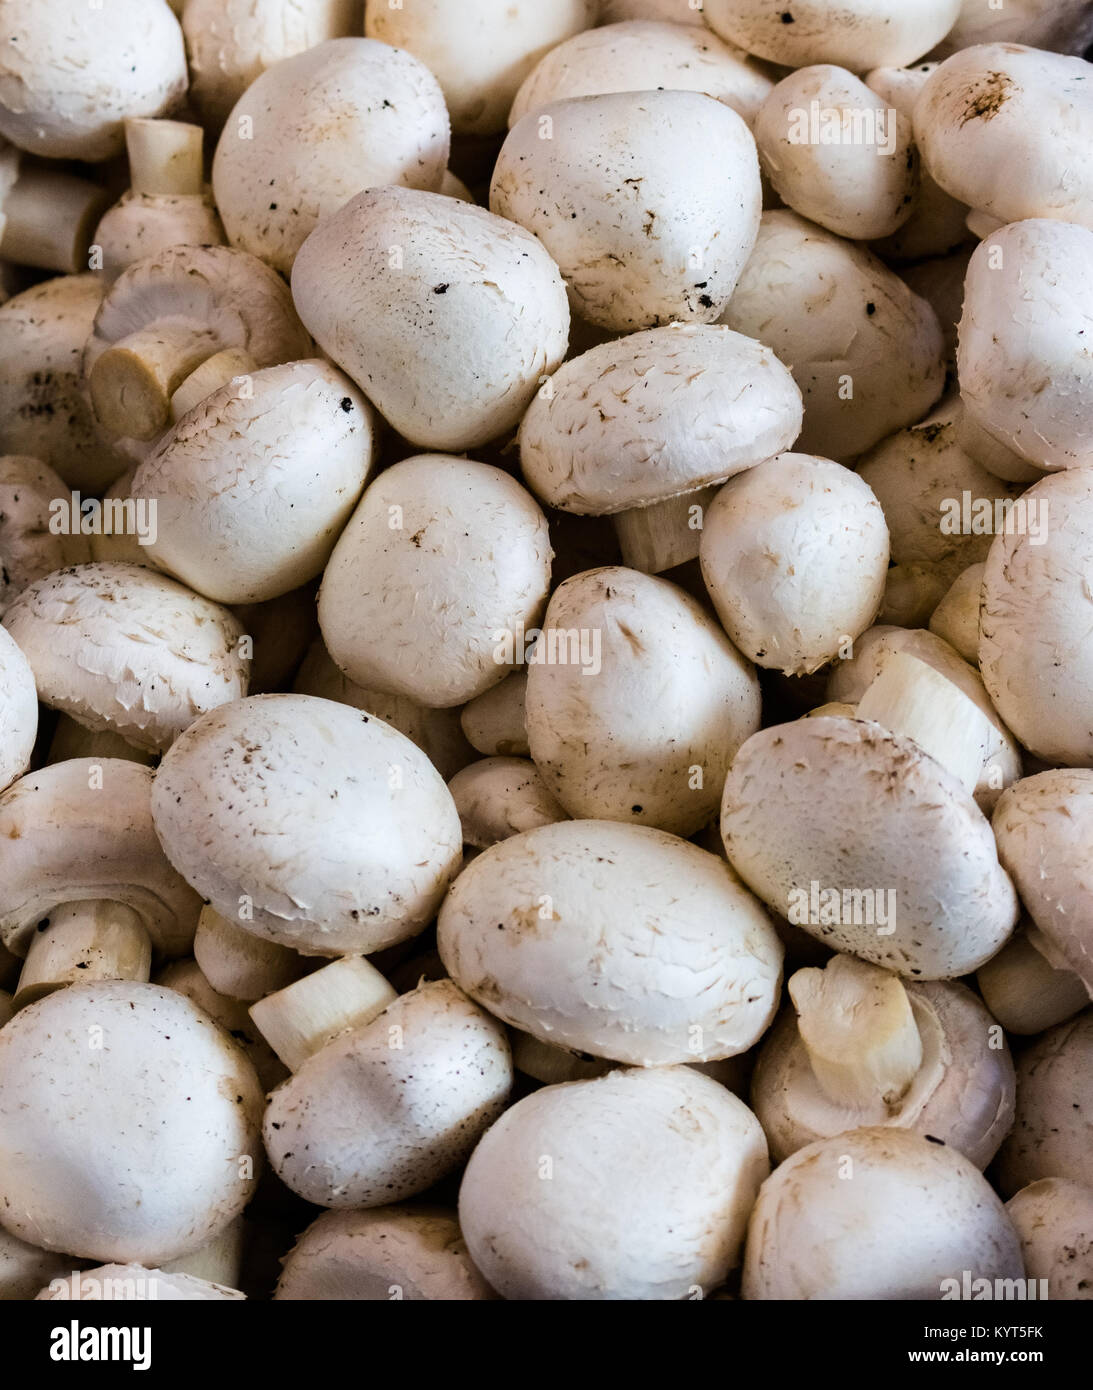 Forest delicacy - white mushrooms. How to clean 29